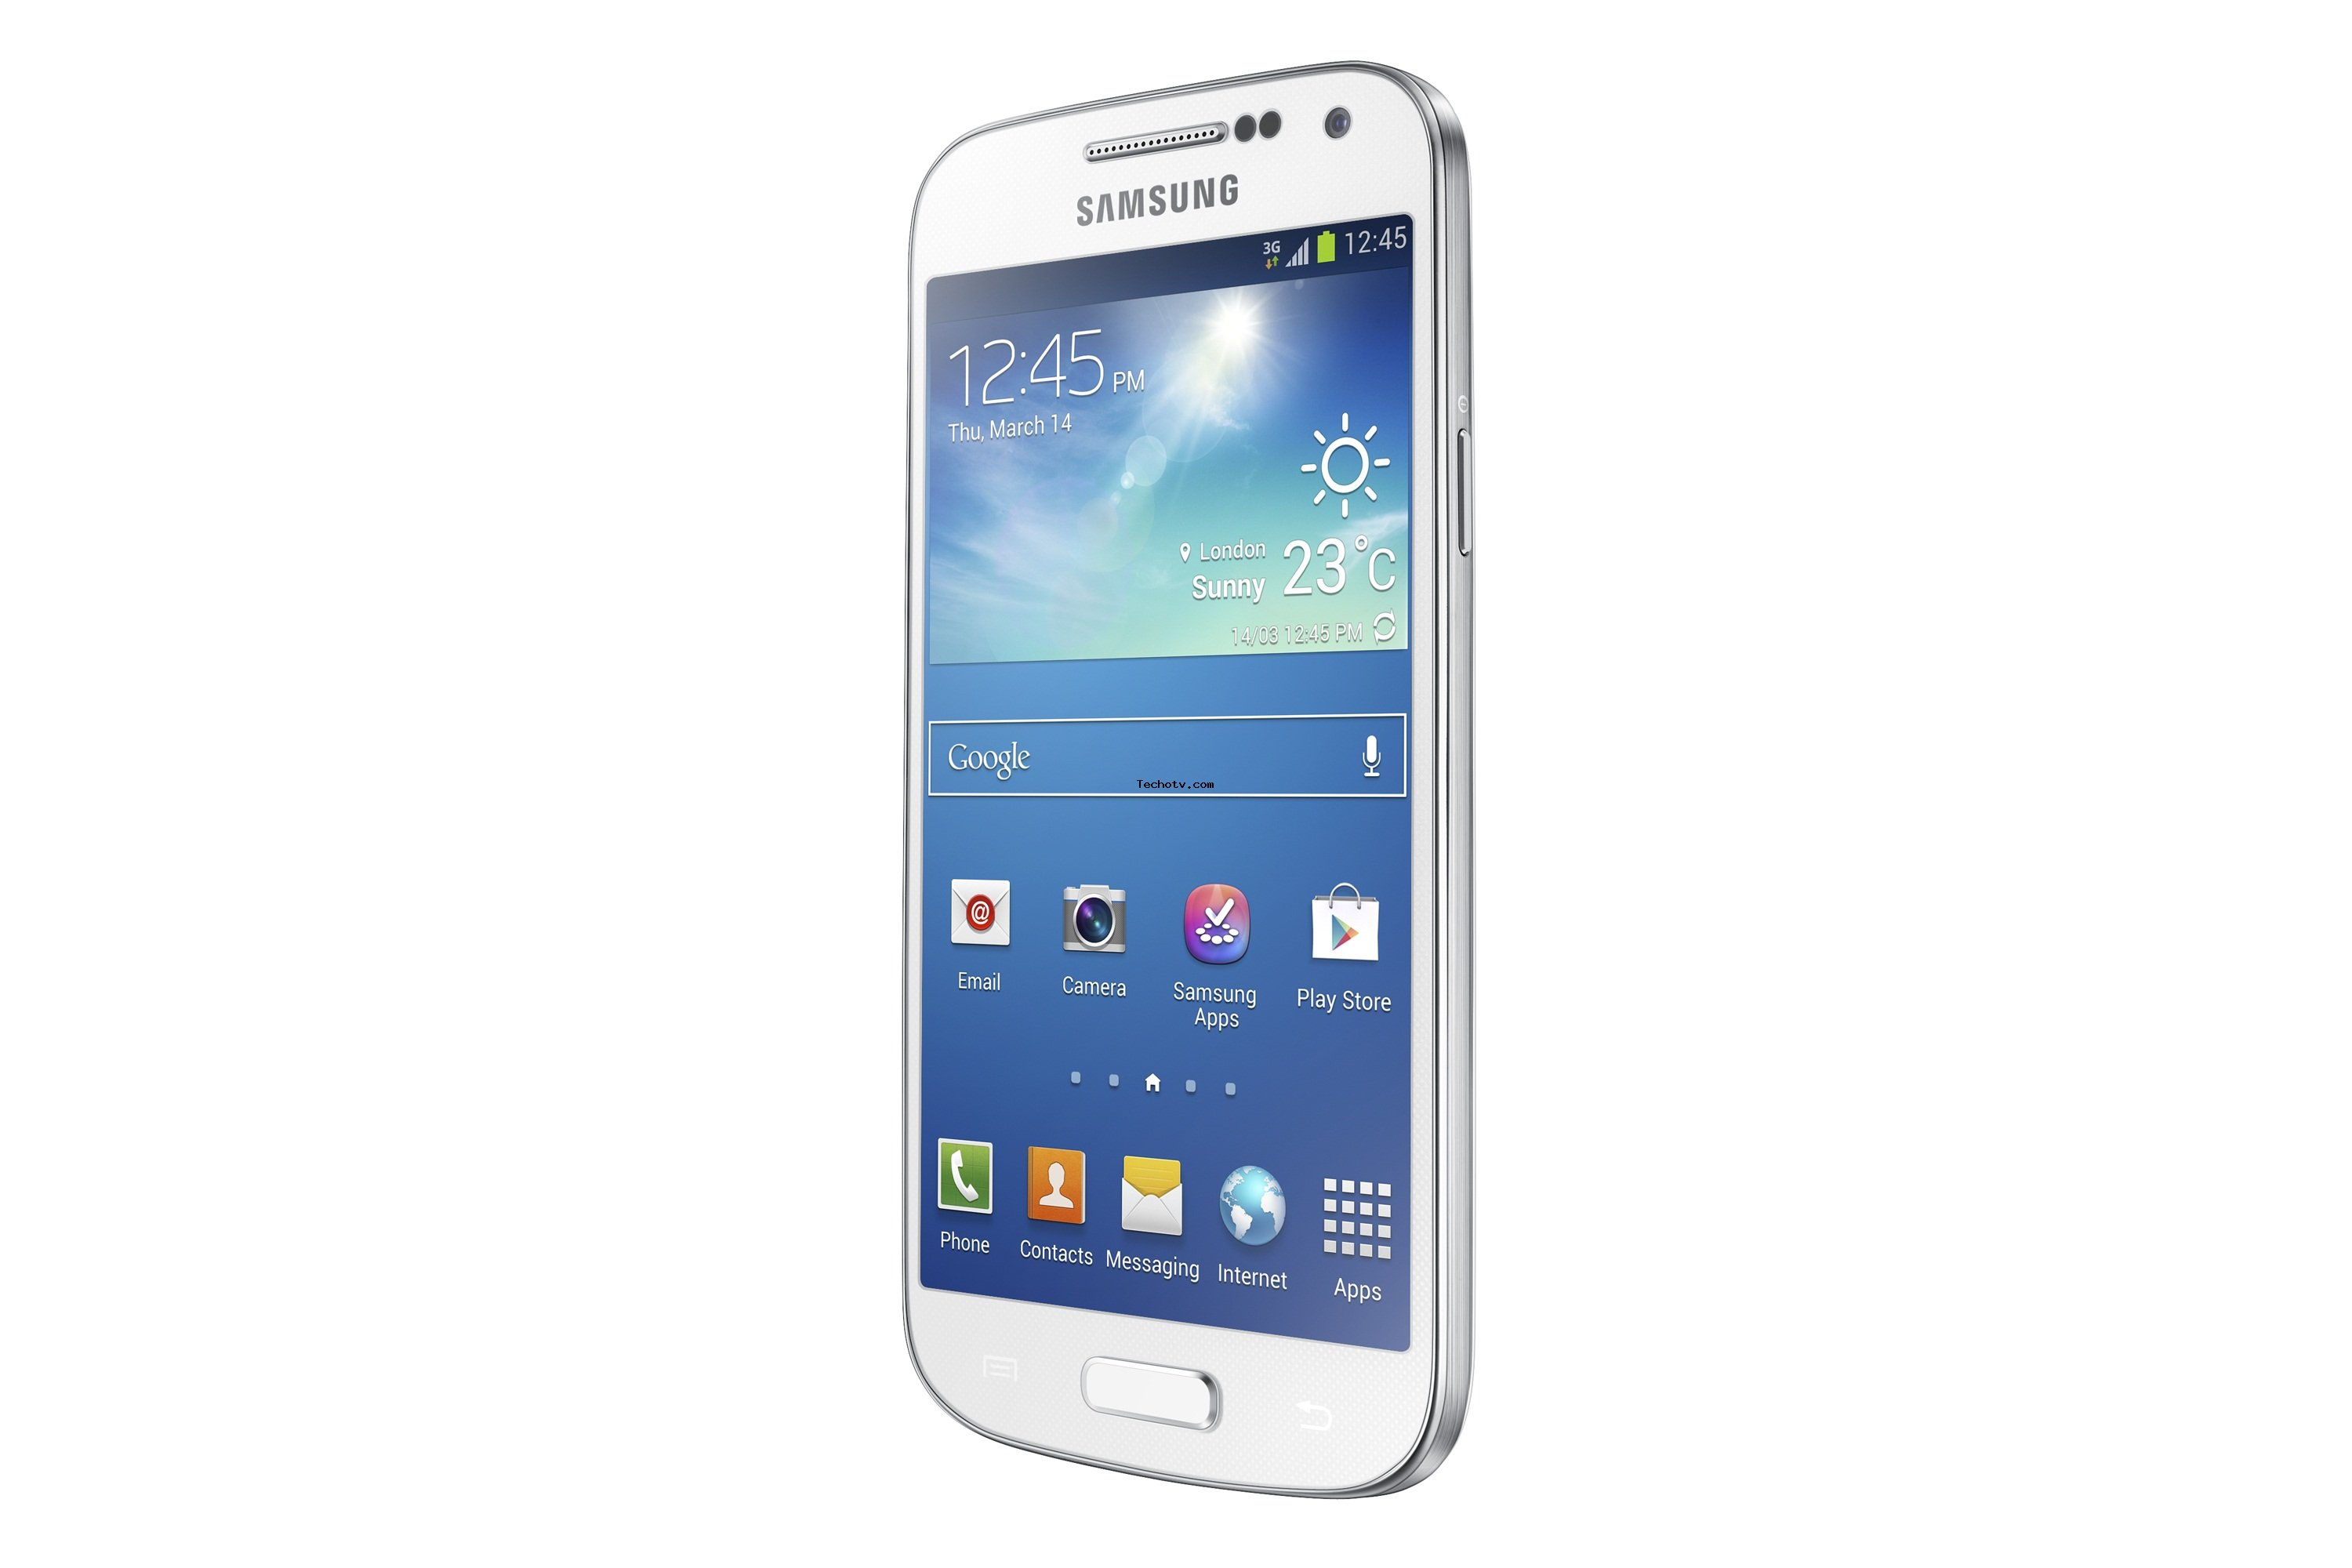 samsung galaxy s4 mini phone full specifications price in. Black Bedroom Furniture Sets. Home Design Ideas